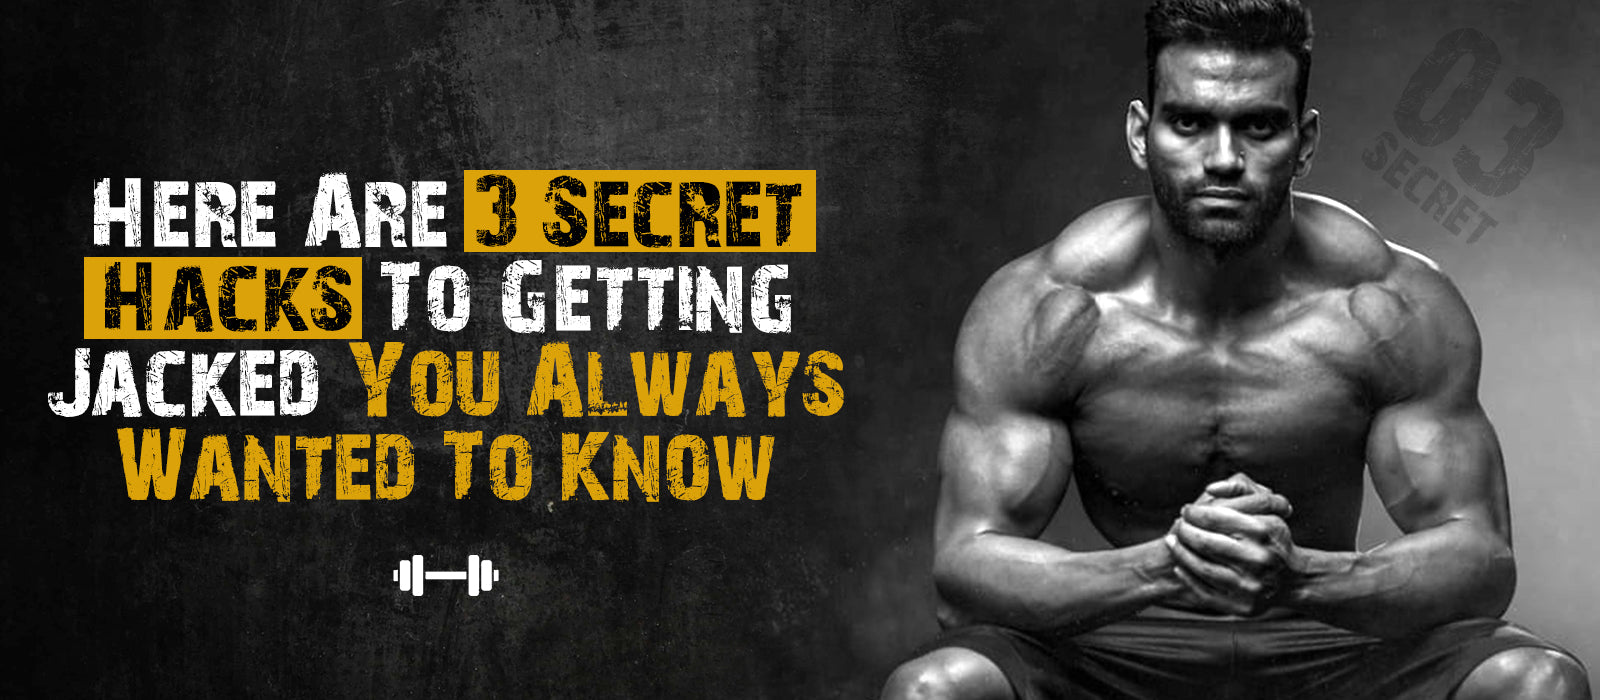 Here Are 3 Secret Hacks To Getting Jacked You Always Wanted To Know